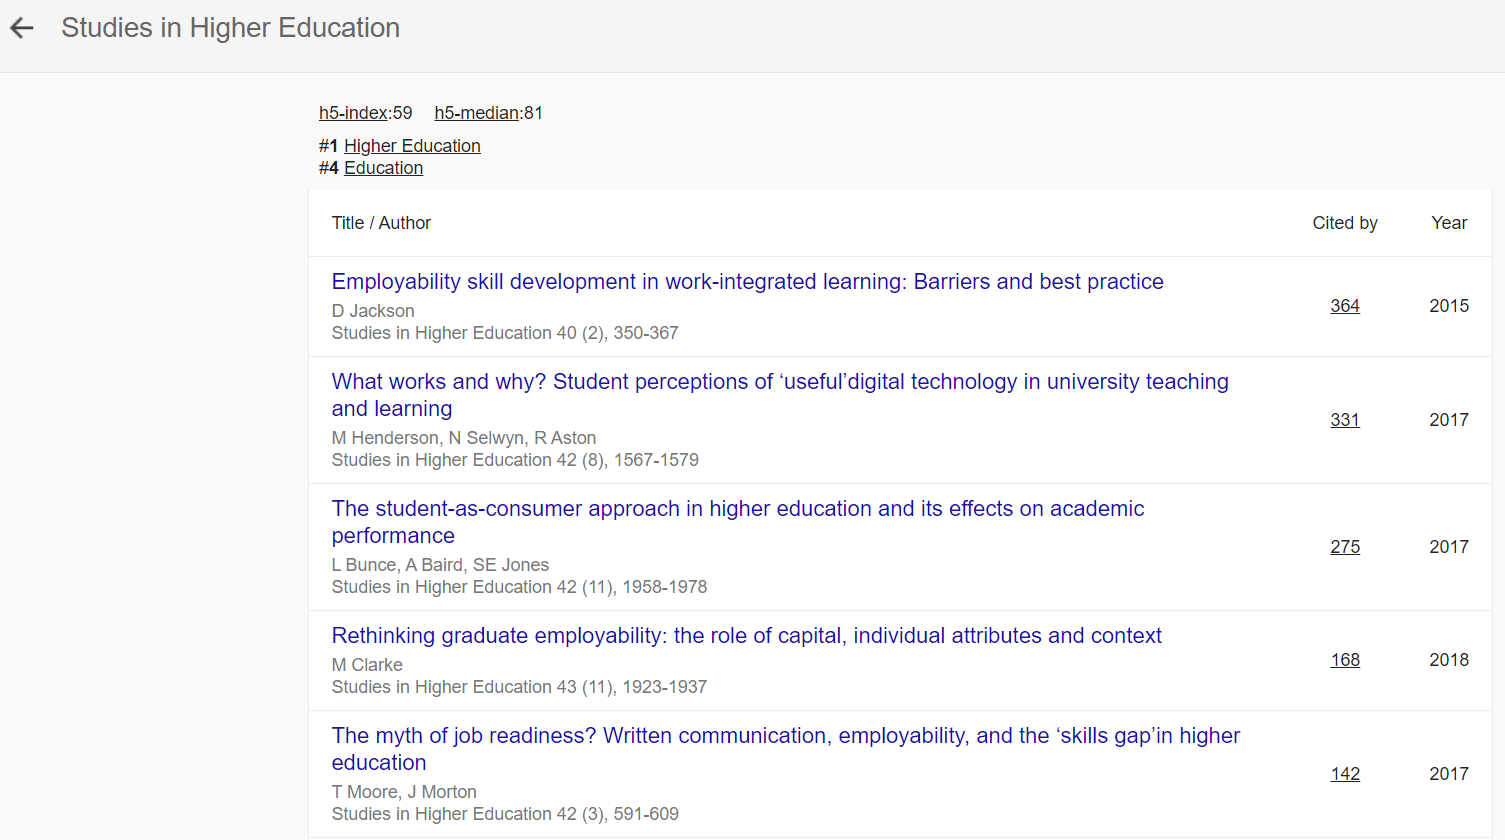 Highly cited articles in Google Scholar Metrics